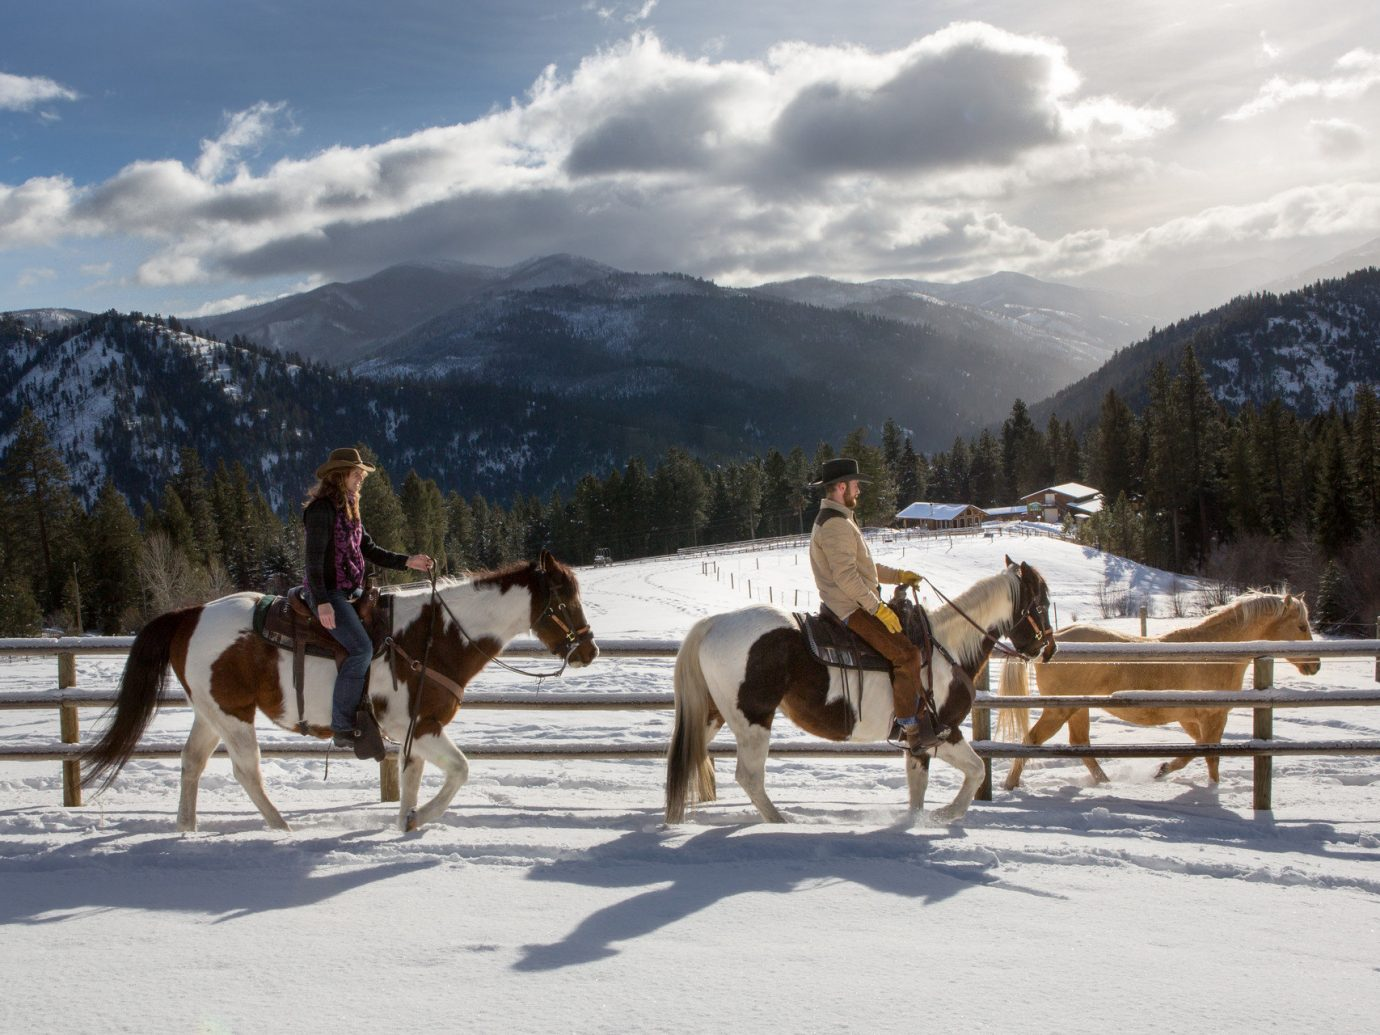 activities Glamping glow horseback riding horses Hotels majestic Montana Mountains Nature Outdoor Activities Outdoors Outdoors + Adventure people remote serene snow sunlight Trip Ideas Winter outdoor sky mountain transport weather vehicle season sled dog sled winter sport animal sports